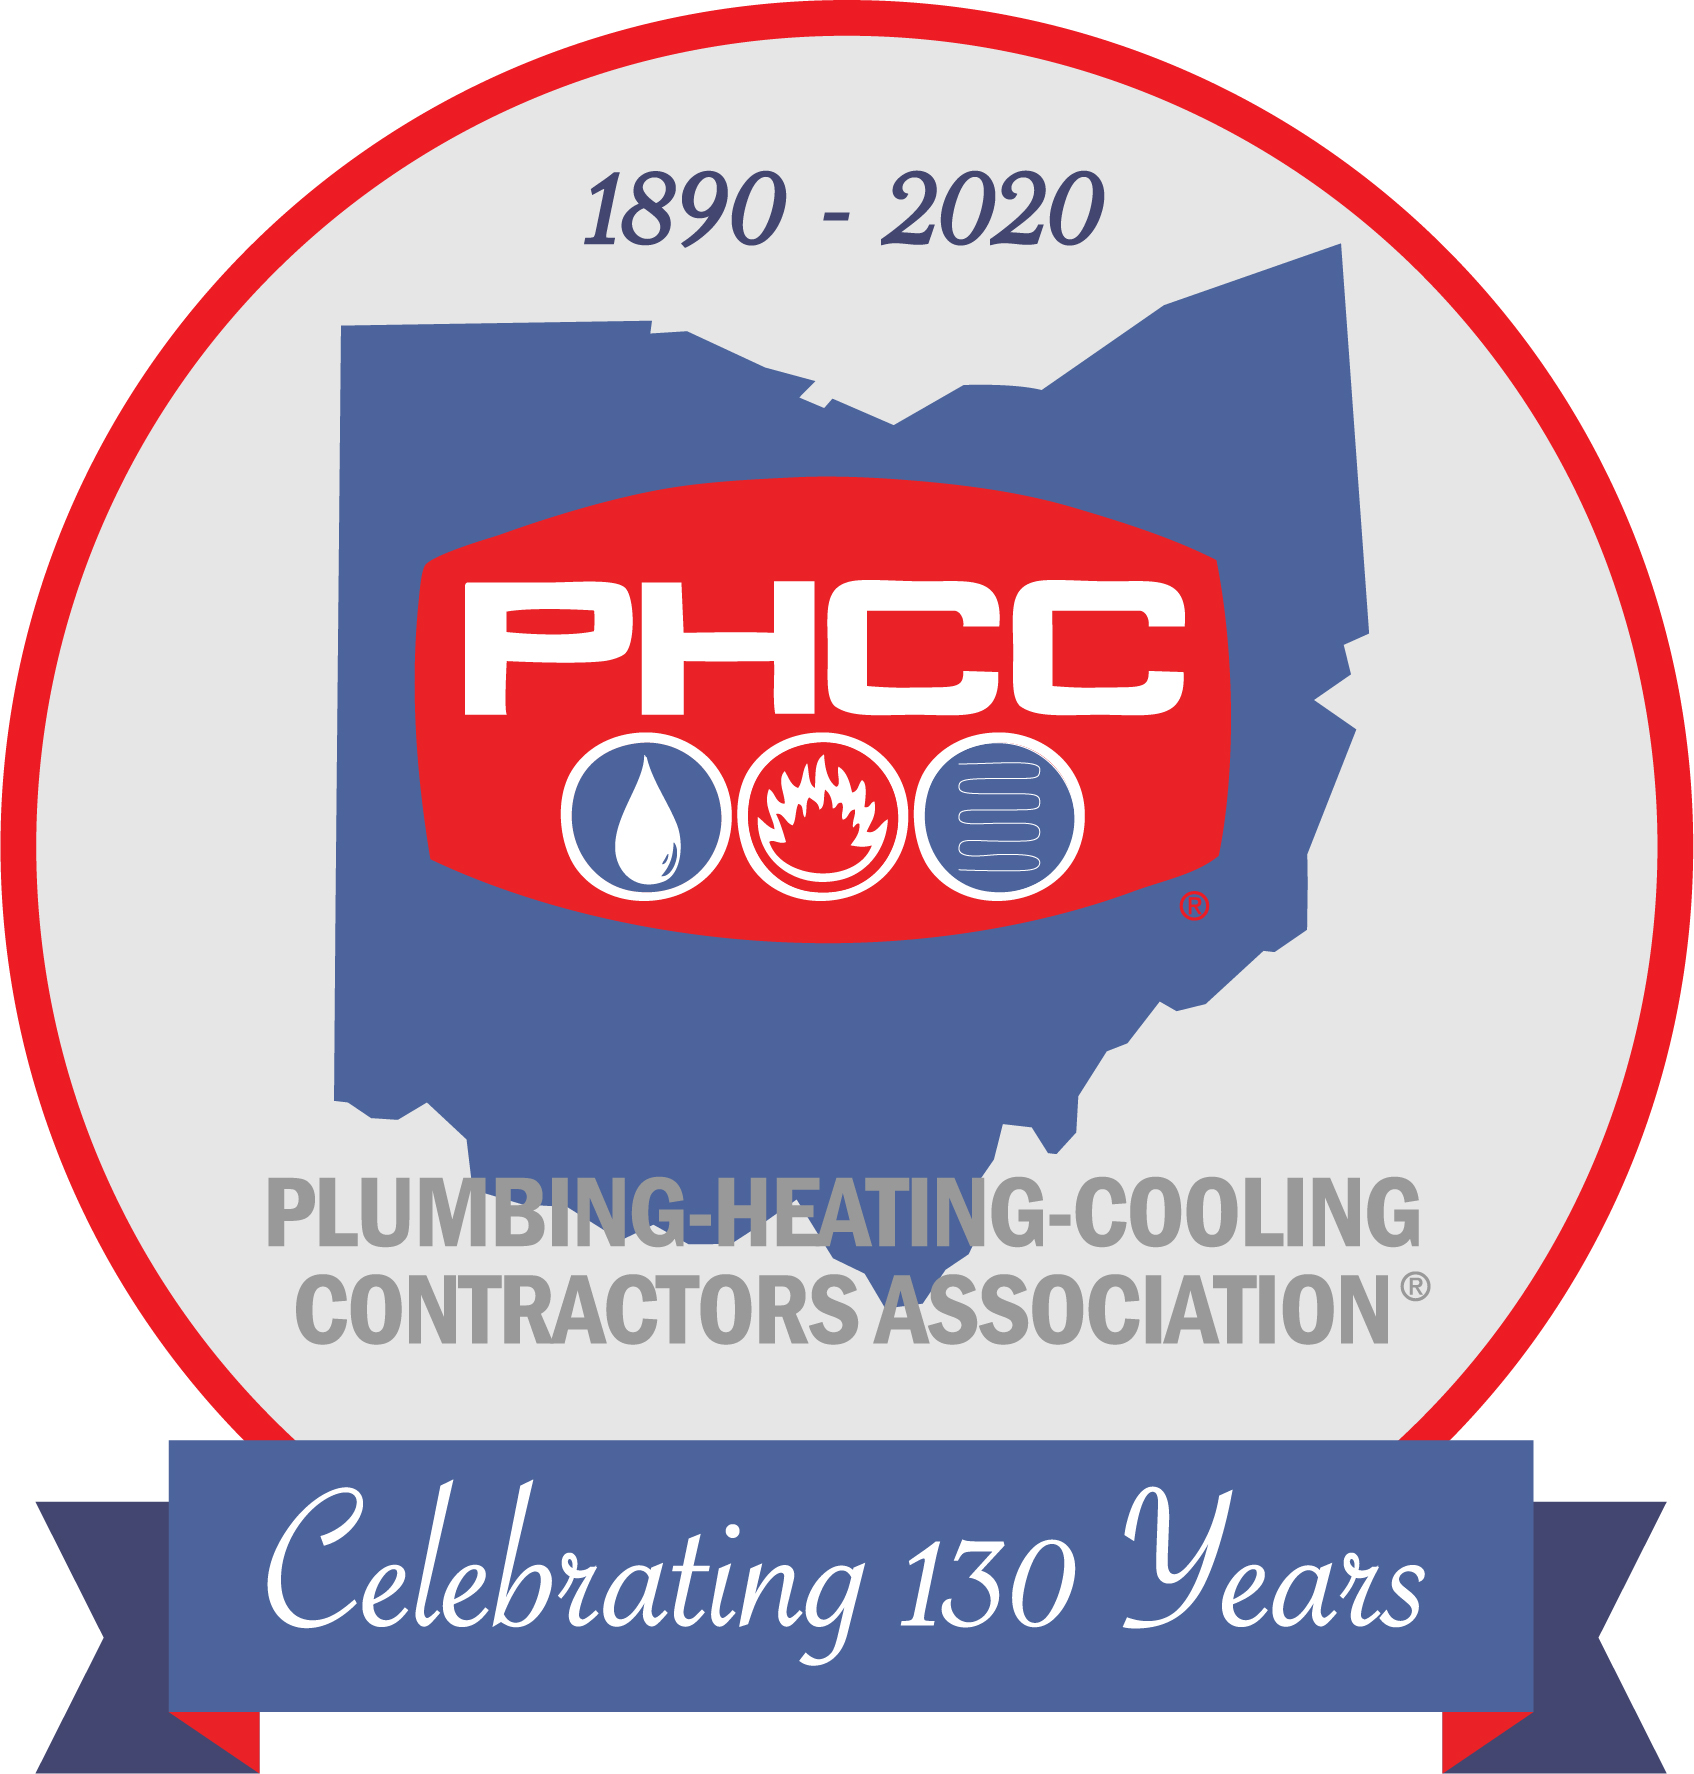 Ohio Phcc Your Source For The Most Valuable Industry Information